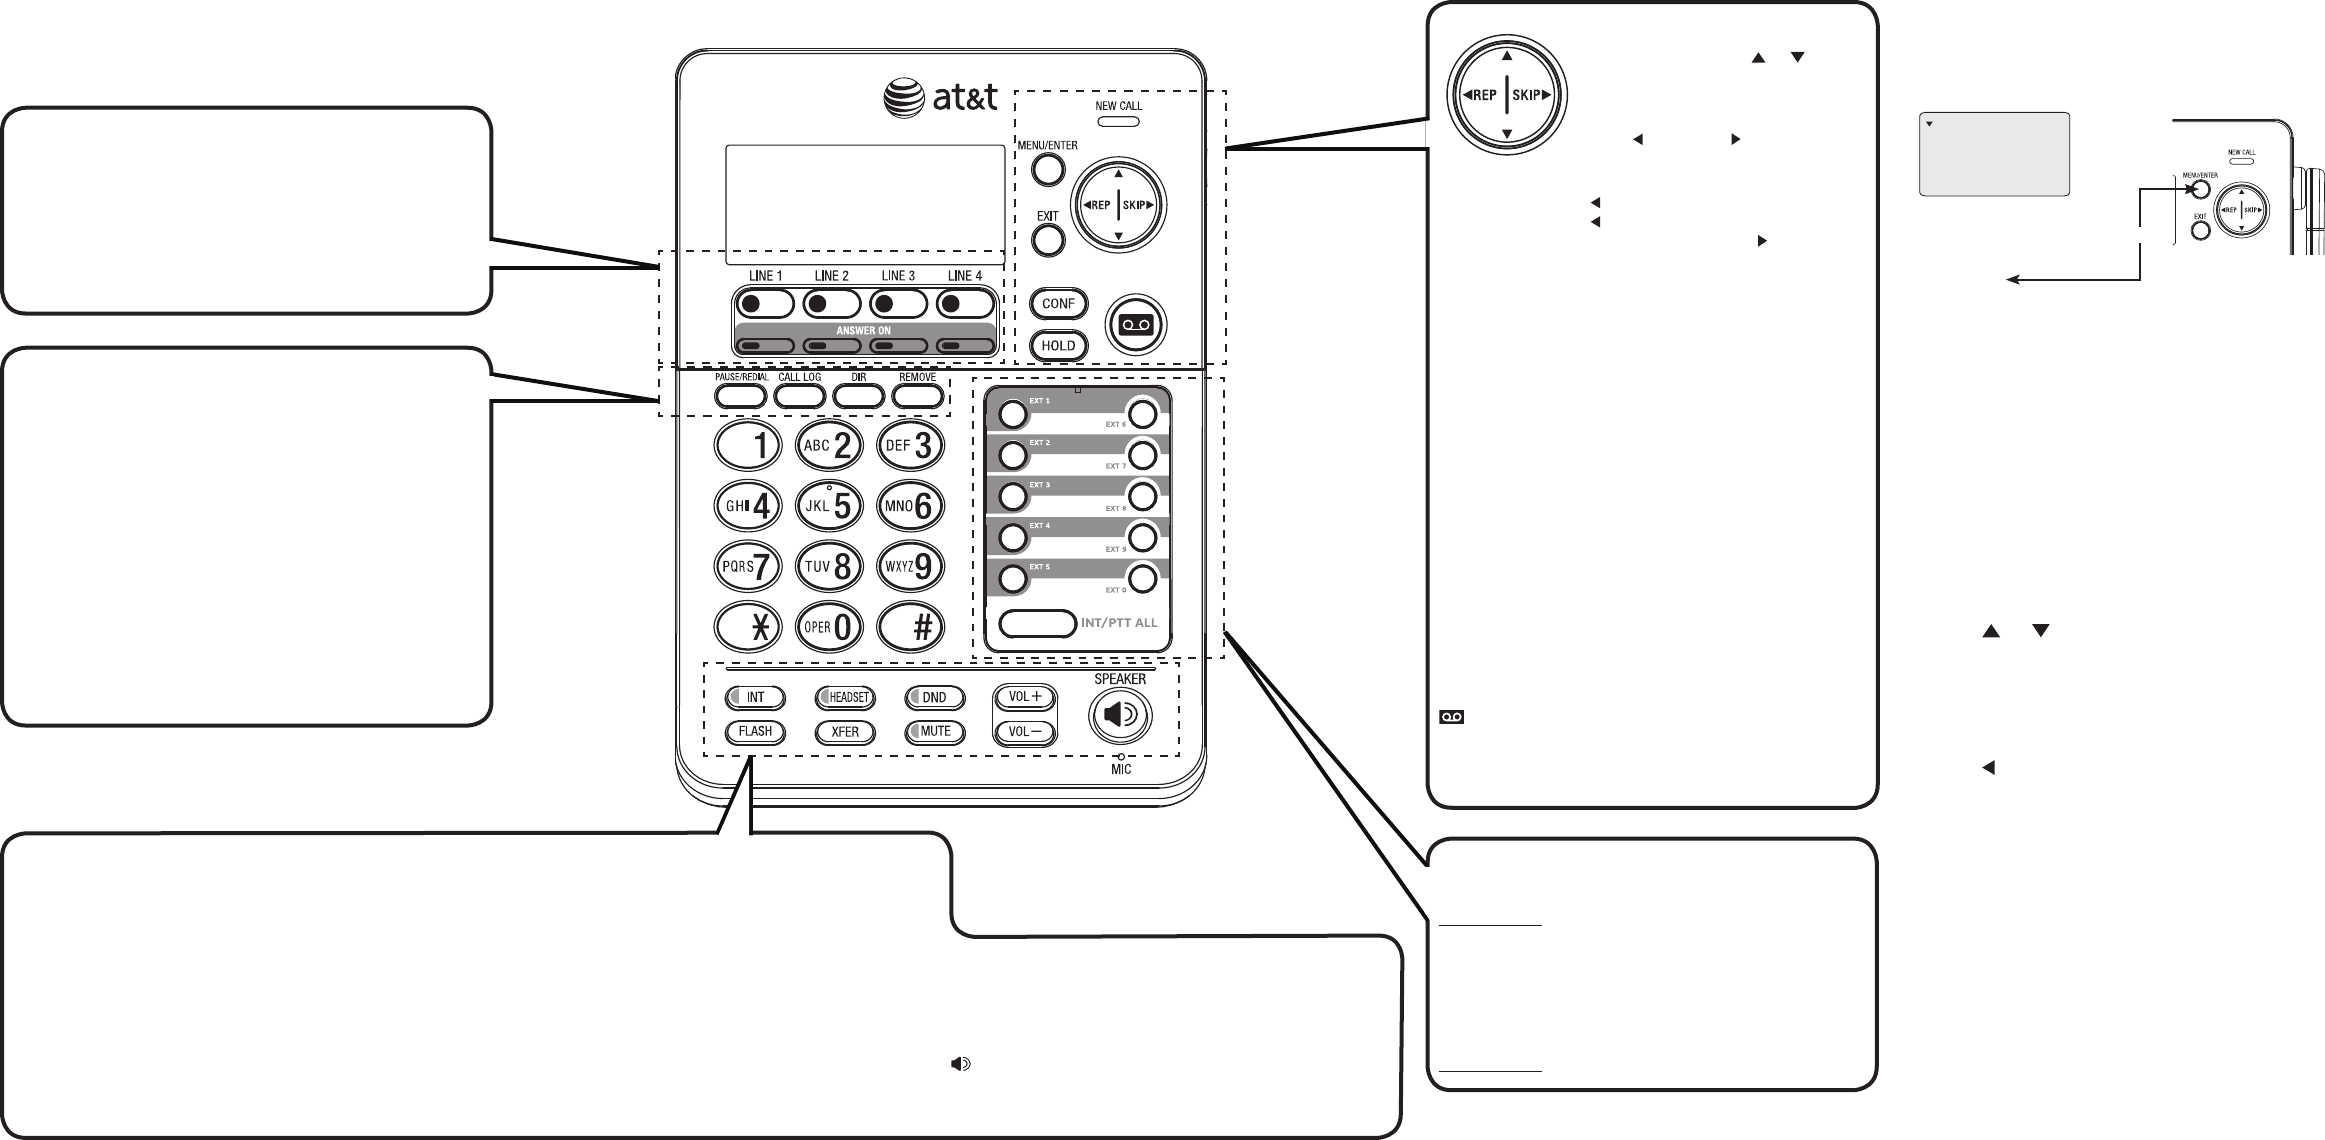 Page 2 of AT&T Telephone SB67158 User Guide